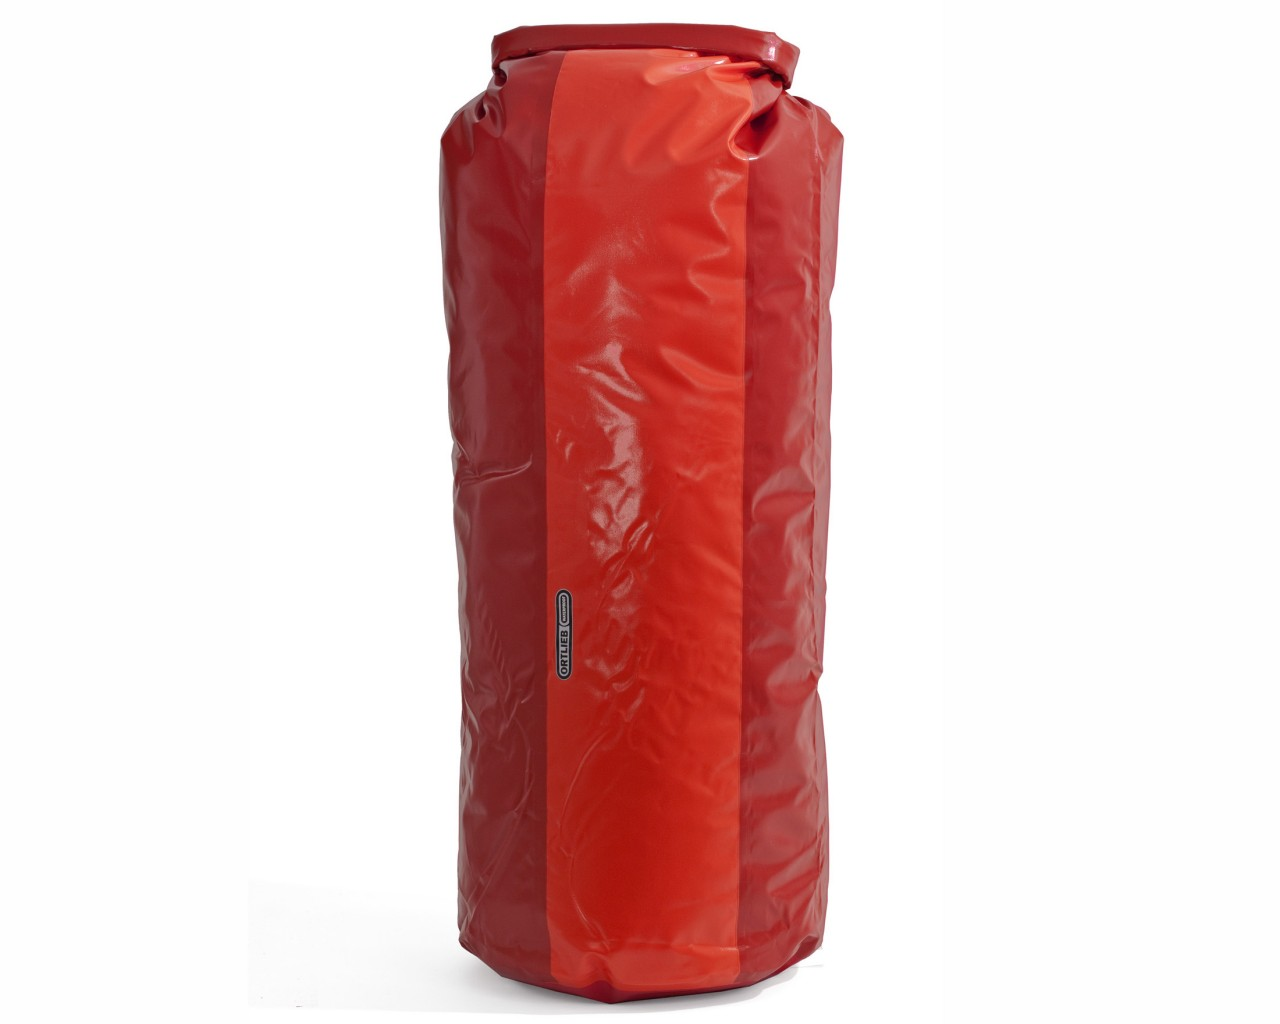 Ortlieb Packsack PD350 - 79 liter   cranberry-signalrot